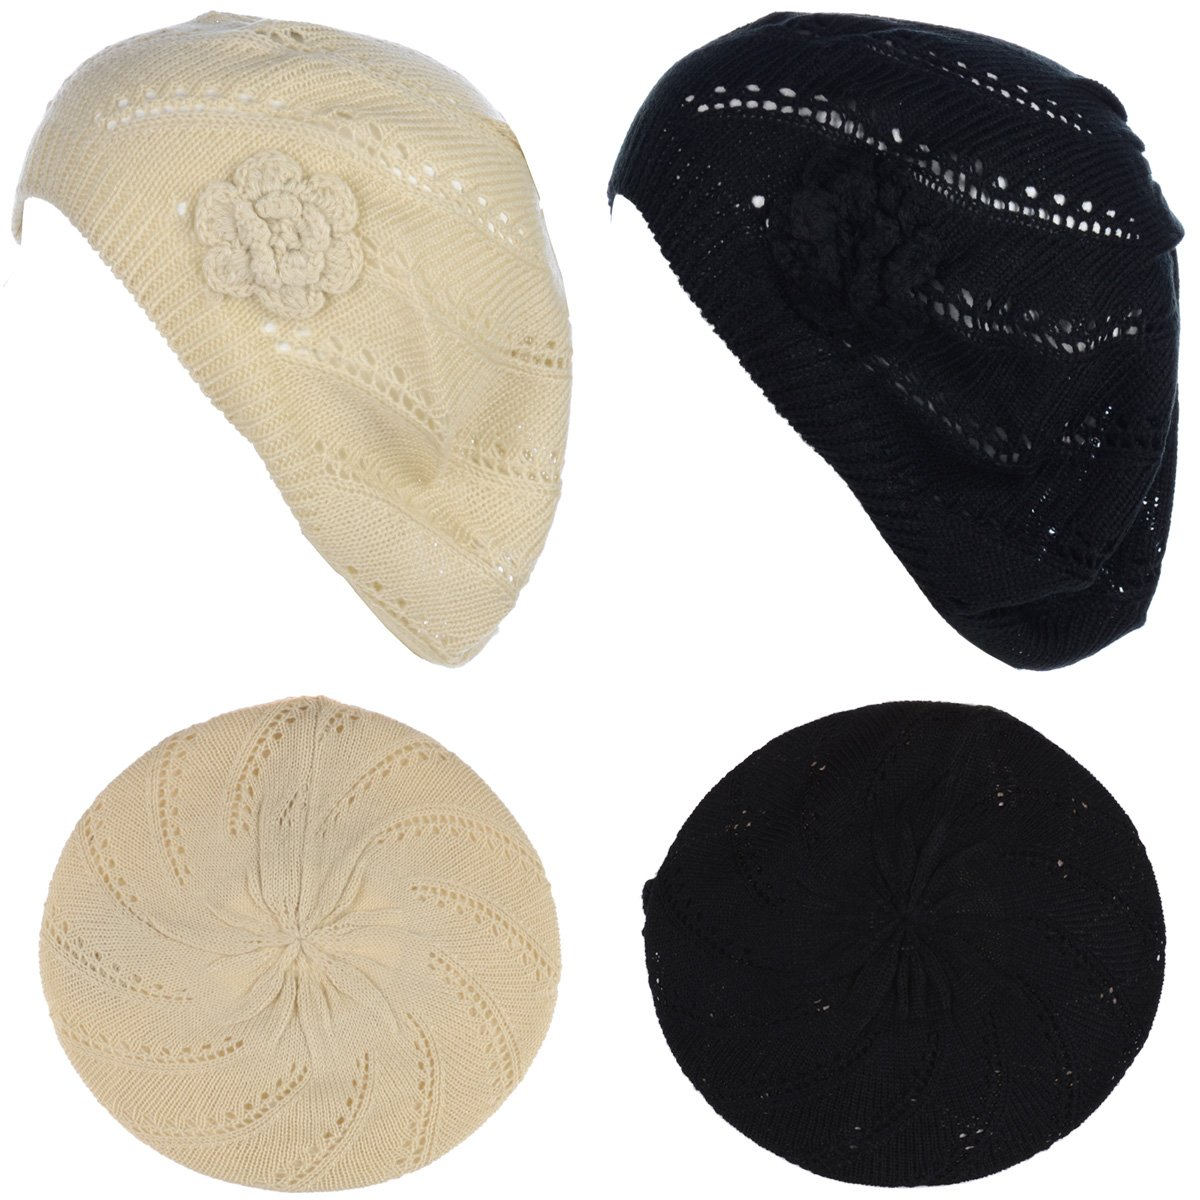 BYOS Chic Parisian Style Soft Lightweight Crochet Cutout Knit Beret Beanie Hat (2-Pack Swirl Cream & Black)